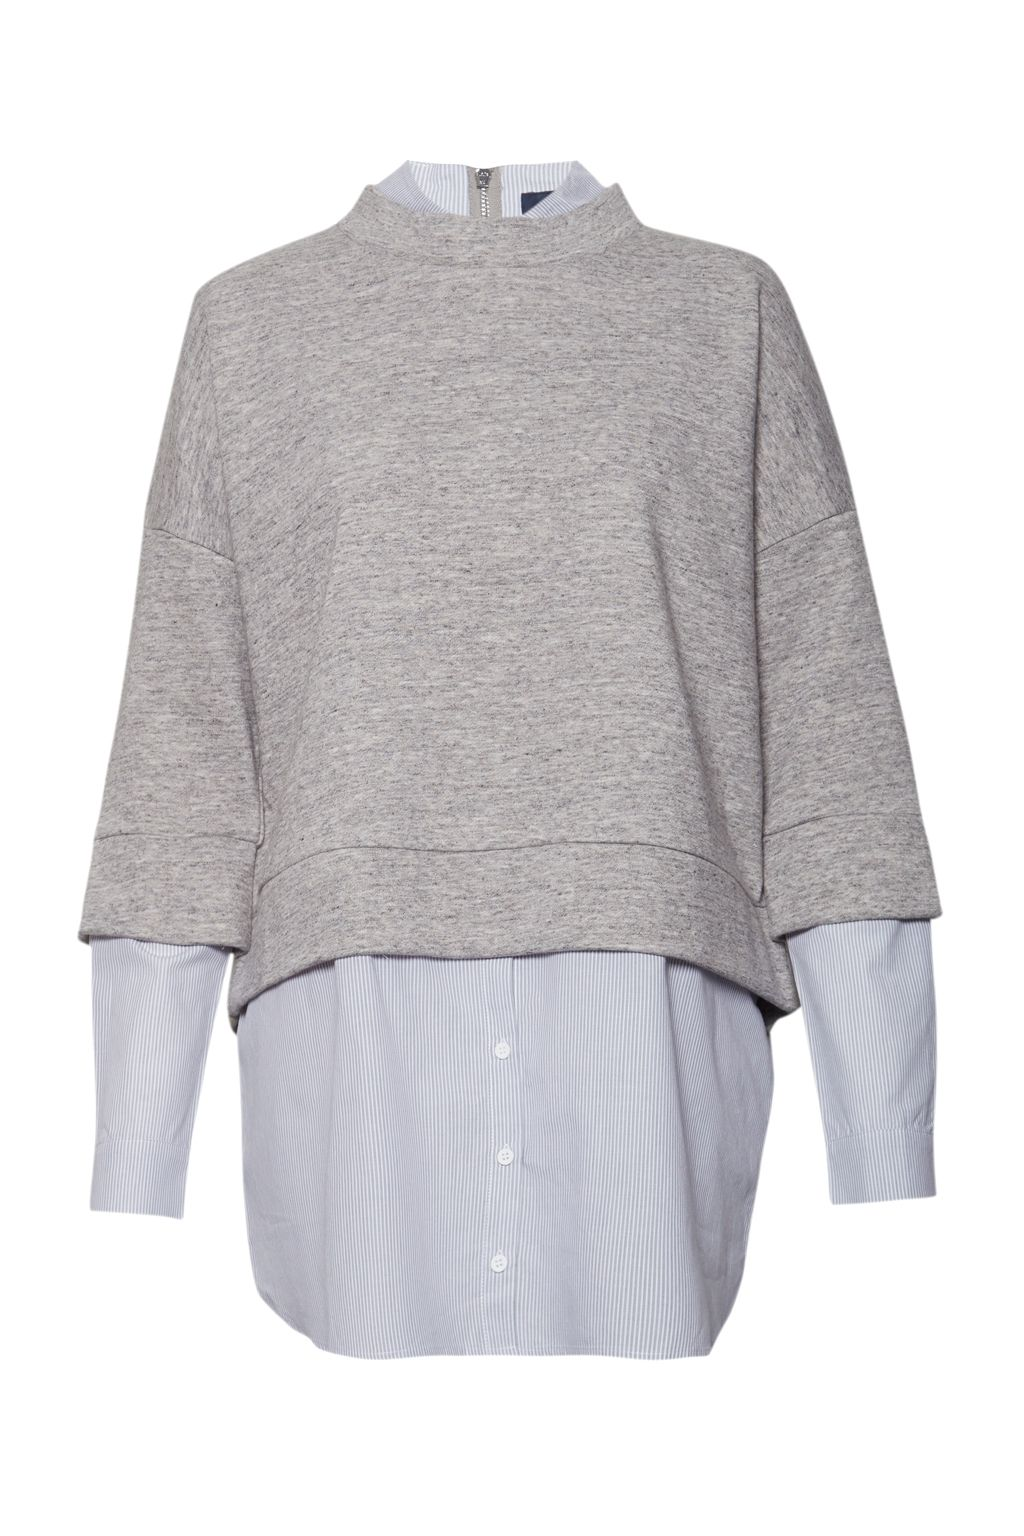 French Connection Dune Mix Shirting Detailed Sweatshirt, Grey